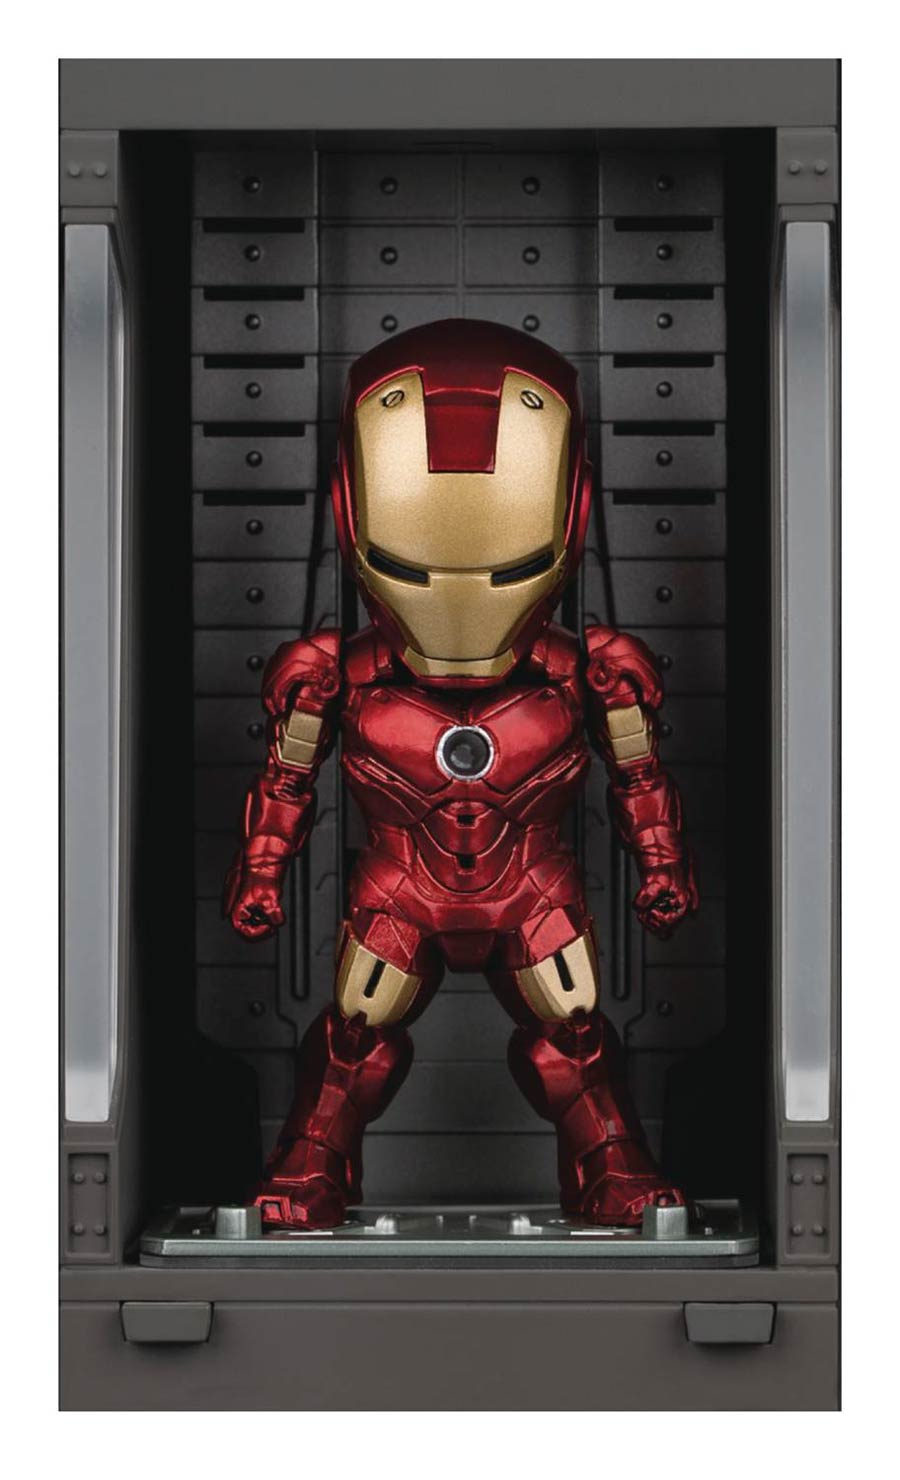 Iron Man 3 MEA-015 Iron Man Mark IV Hall Of Armor Previews Exclusive Figure